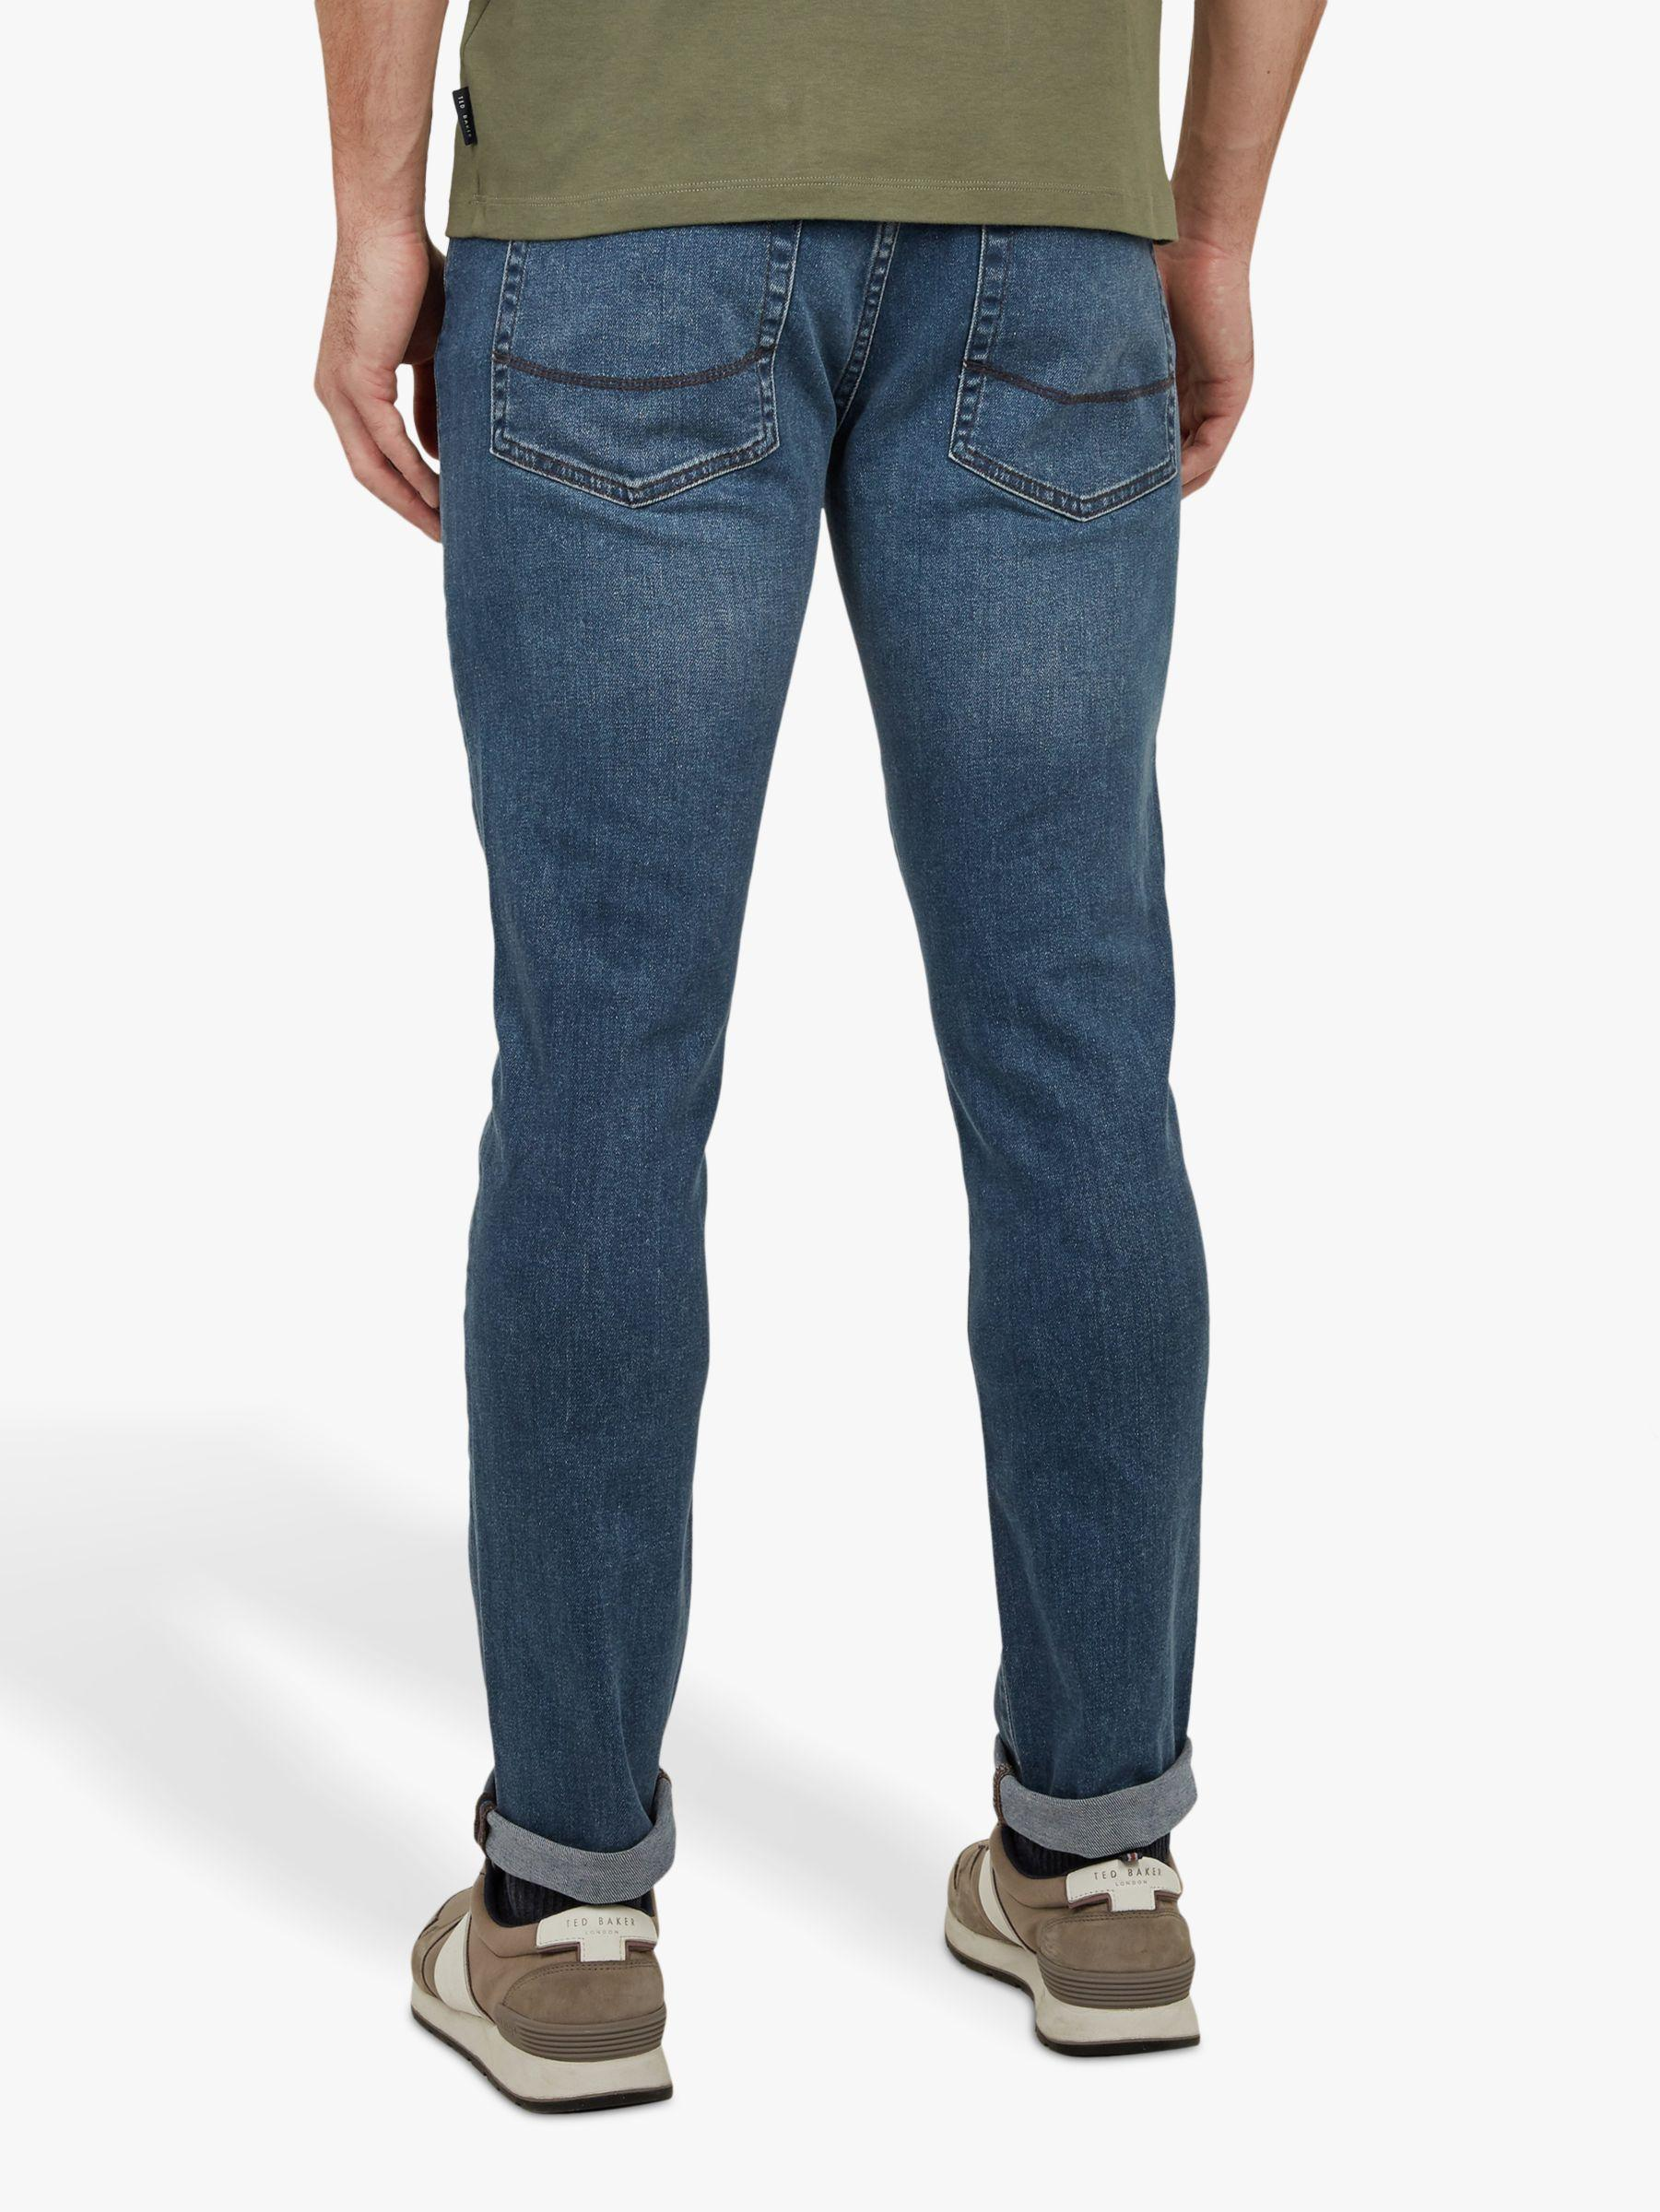 5cec4db596a8 Ted Baker Treezie Tapered Fit Jeans in Blue for Men - Lyst